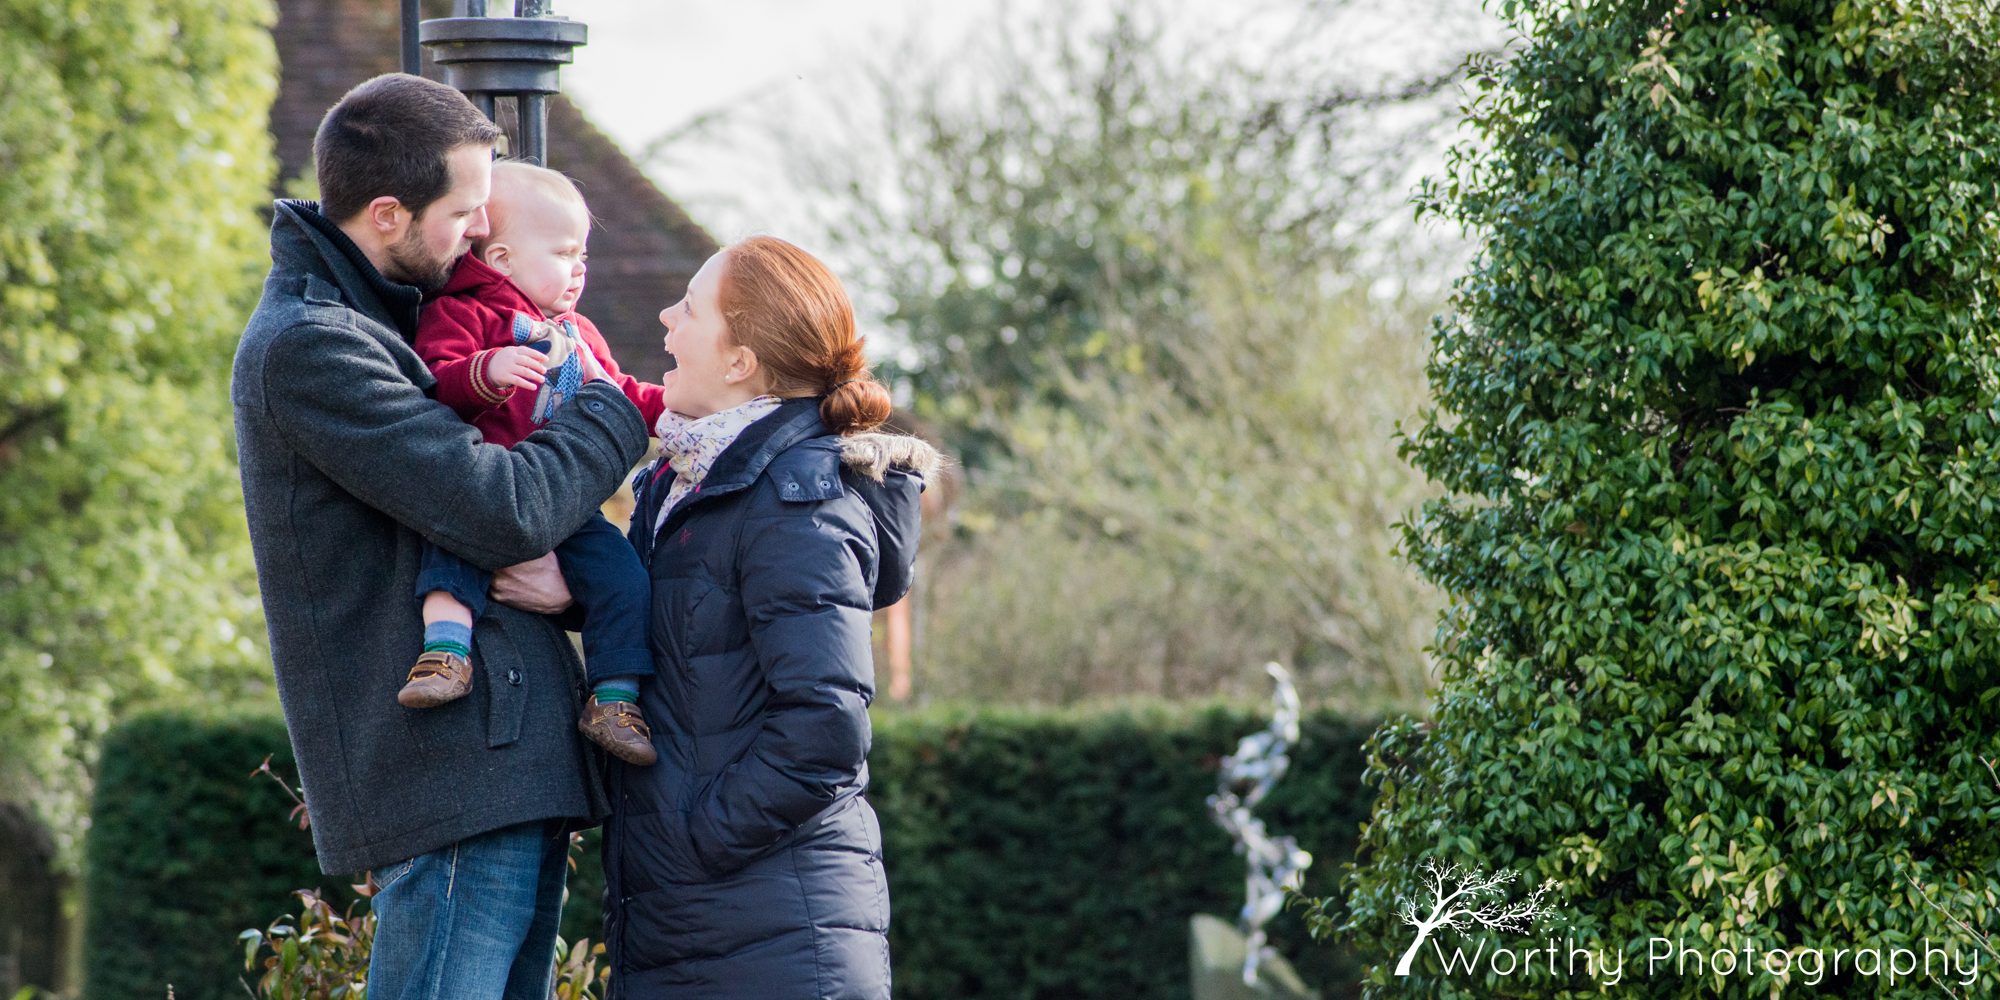 Family photoshoot at the Dean Garnier Garden –  in Winchester